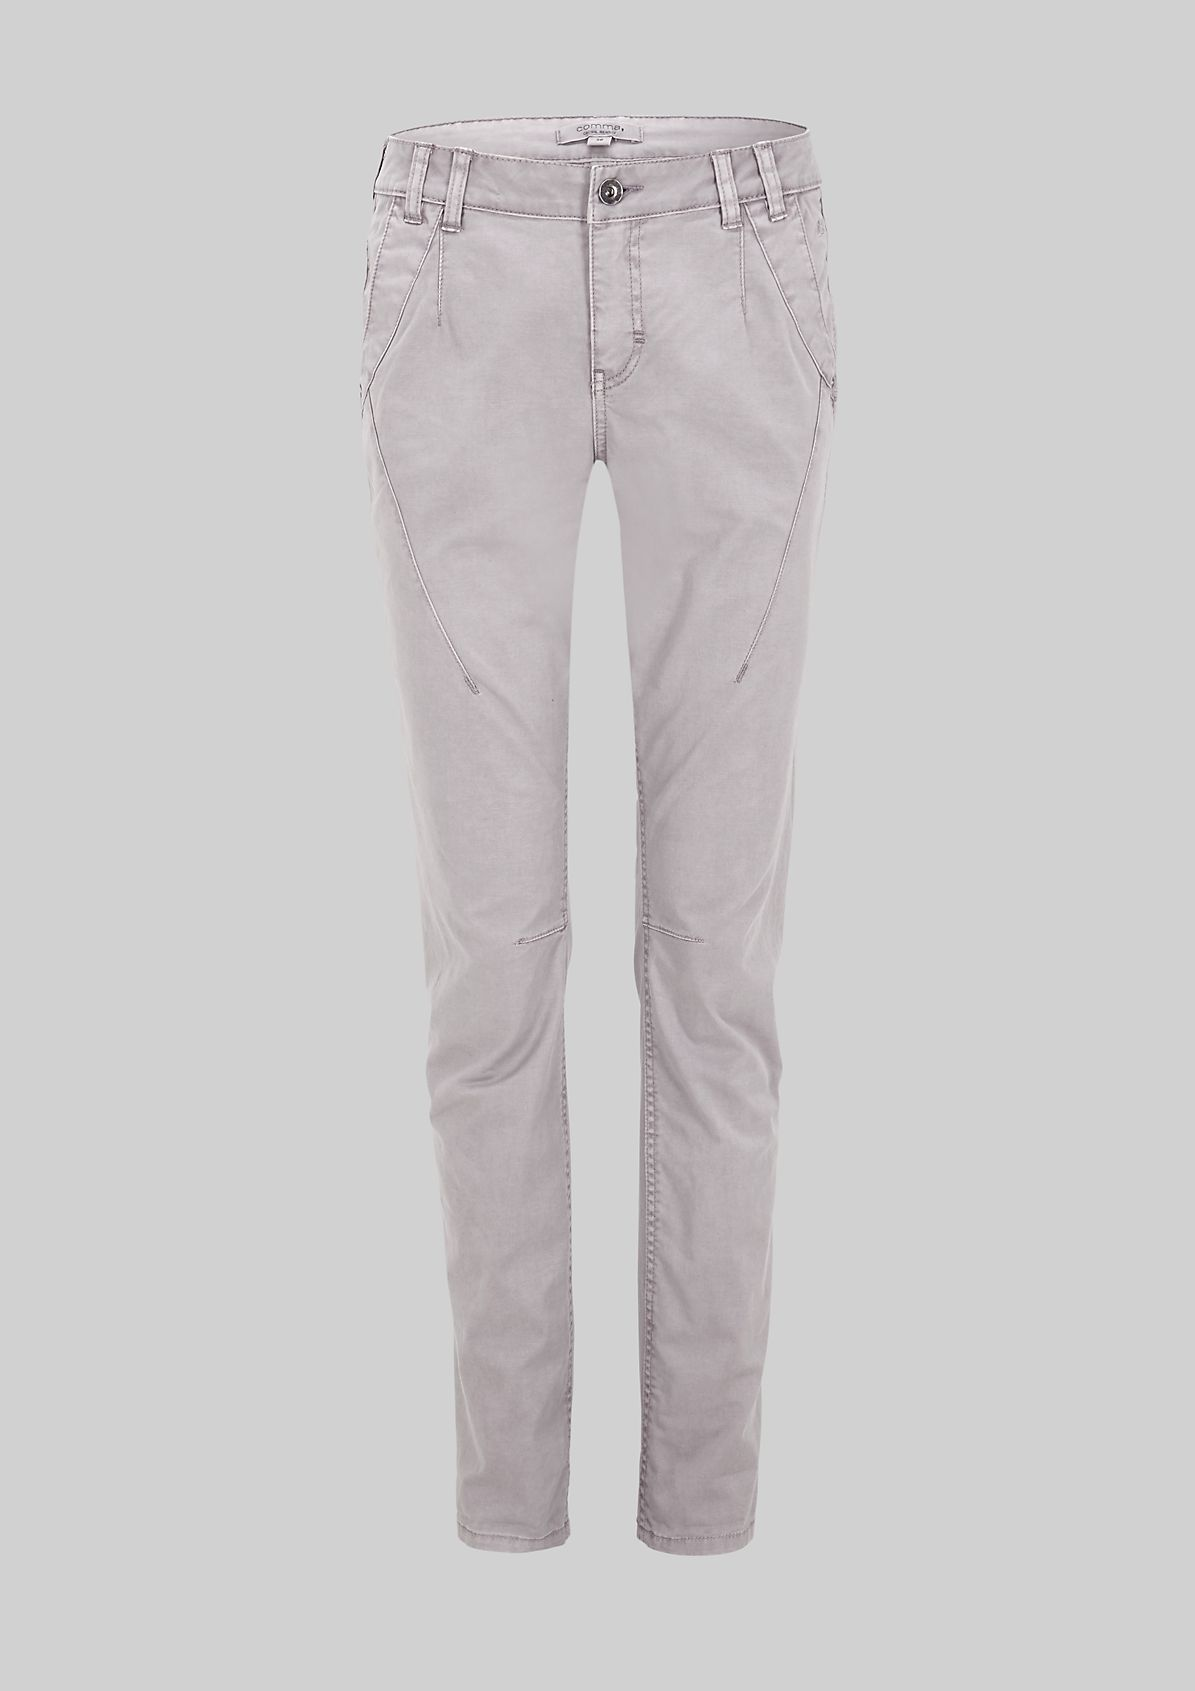 Smart twill trousers in a vintage look from s.Oliver